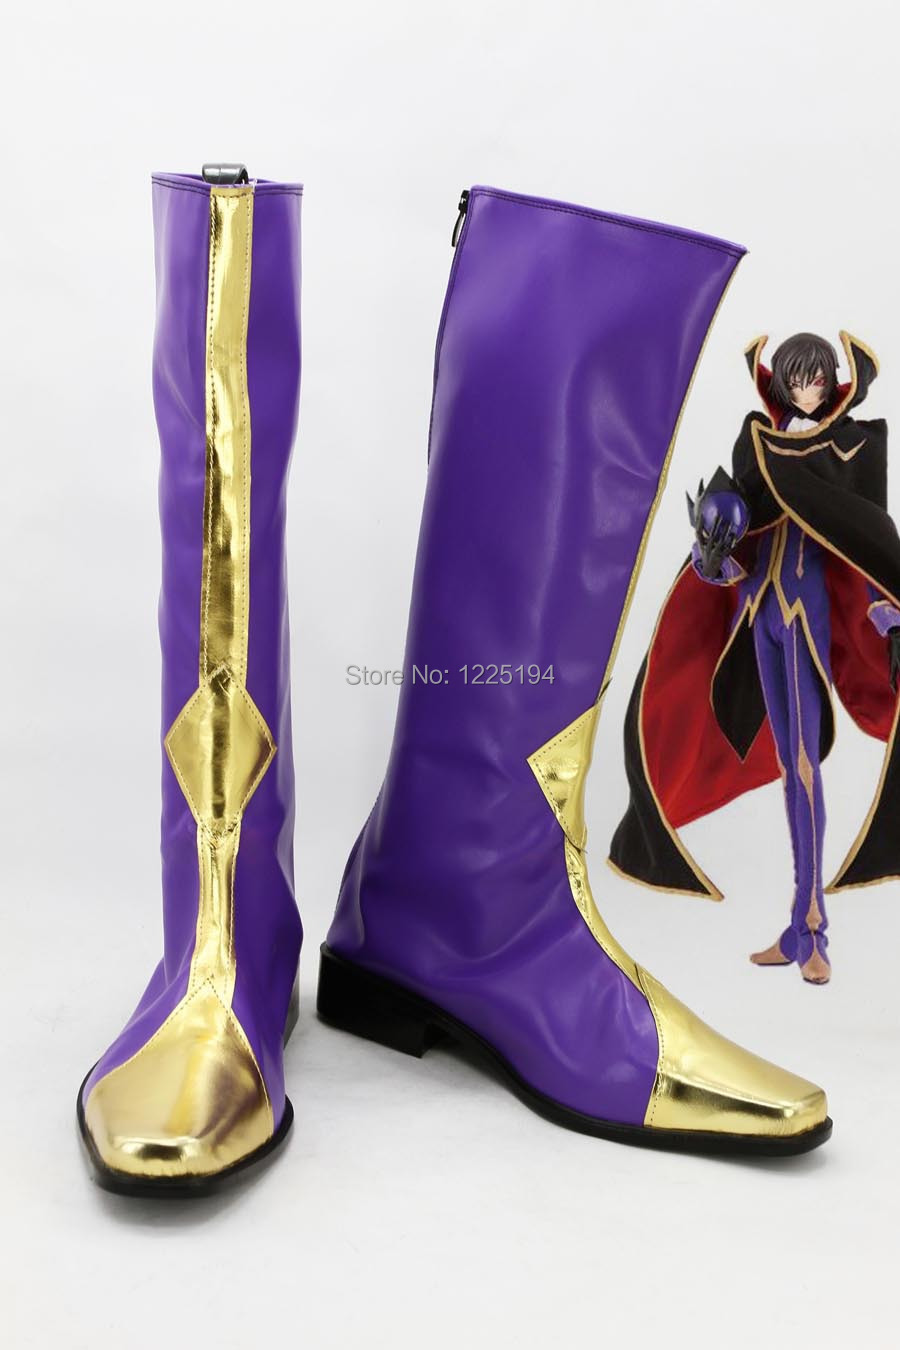 CODE GEASS Shoes Lelouch of the Rebellion Zero Boots Shoes Anime Cosplay EU US Size Custom Made For Girl цена